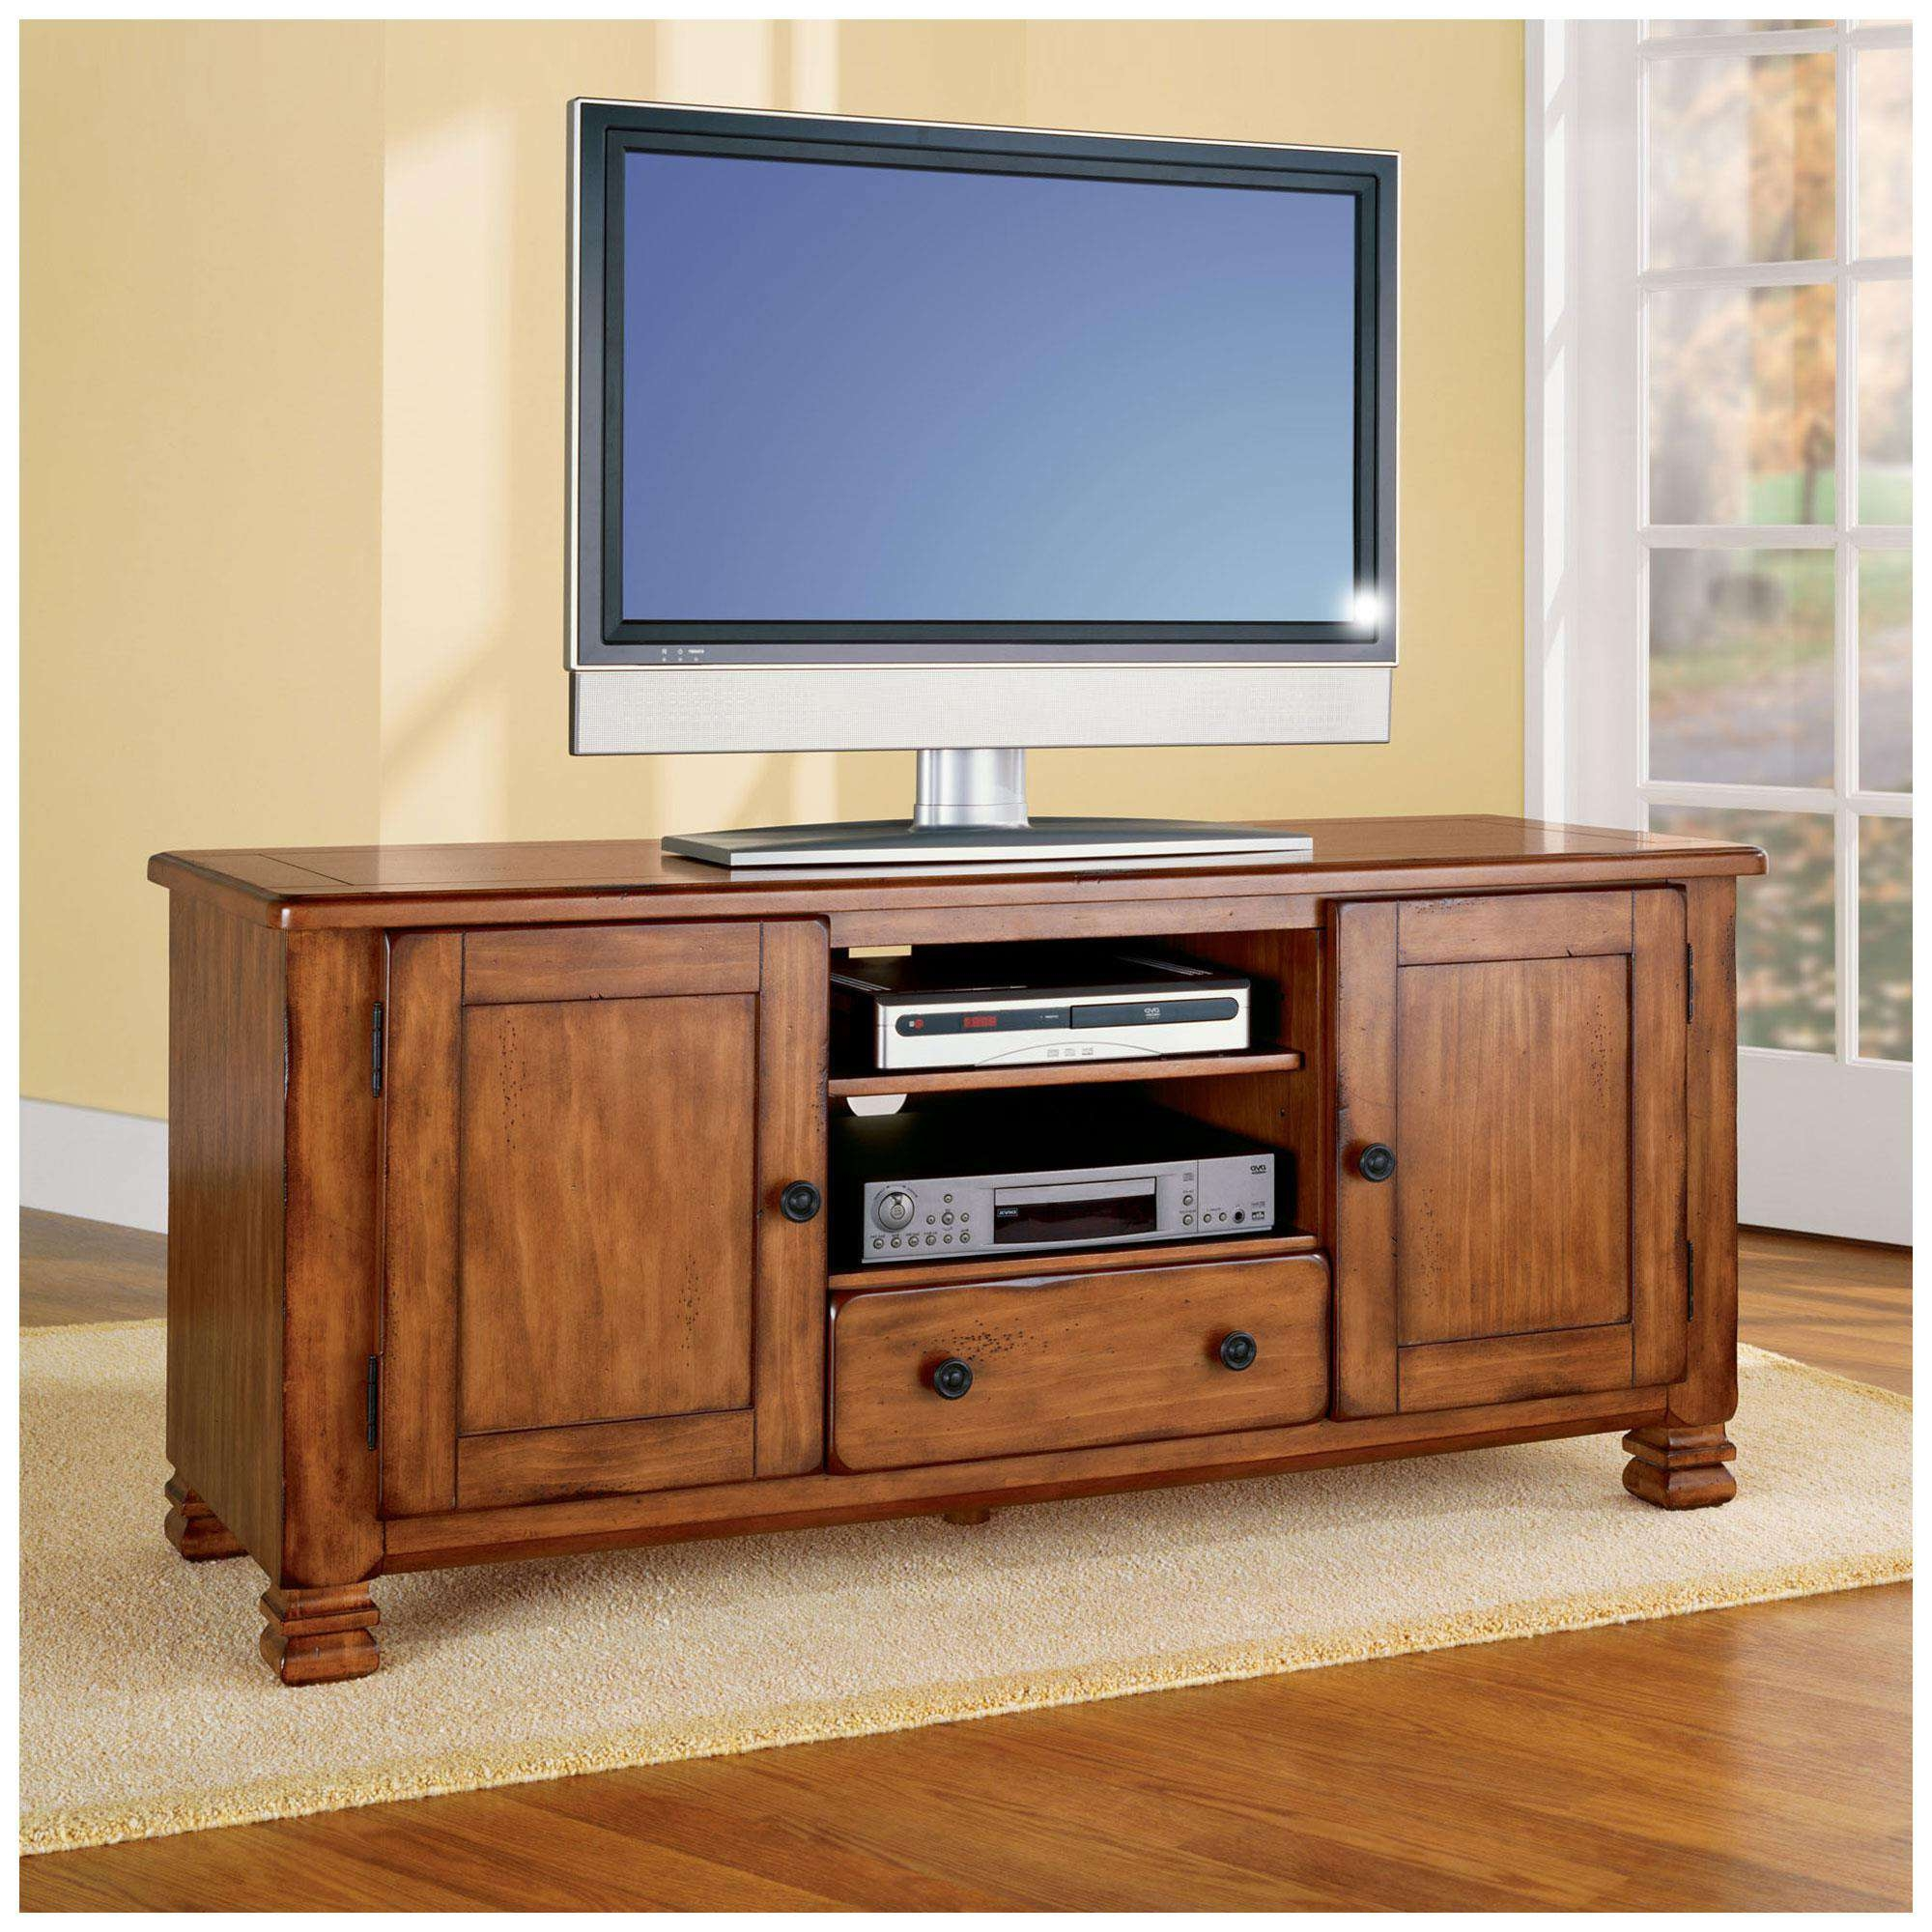 Open Tv Stands Uncategorized Used File Cabinets For Sale Best For Wooden Tv Stands For Flat Screens (View 10 of 15)